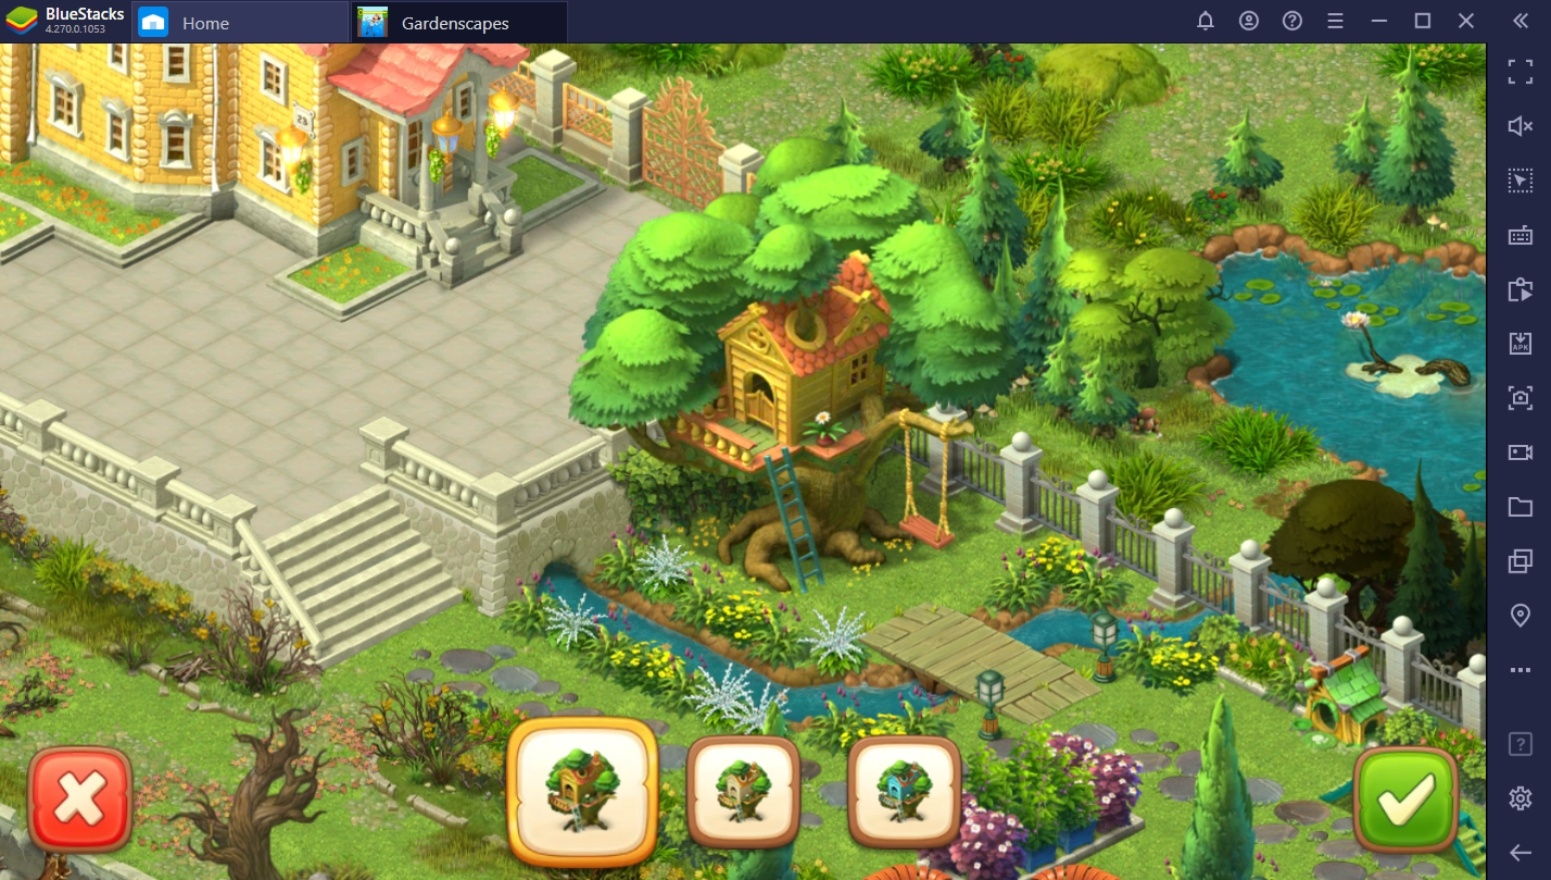 Tips & Tricks To Play Better At Gardenscapes